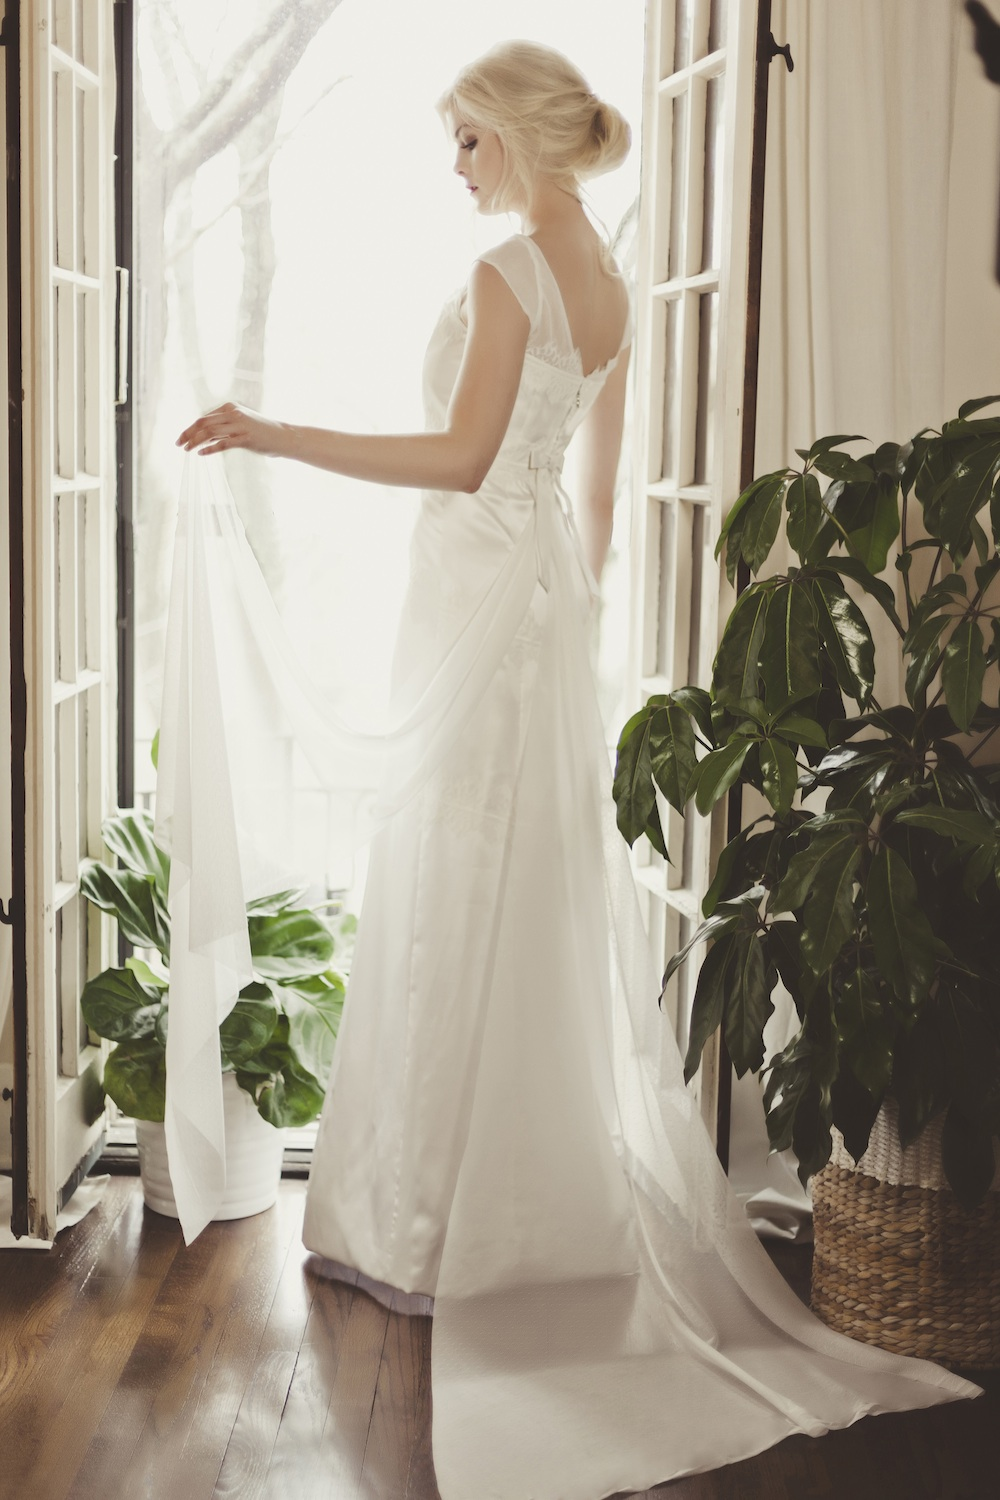 Veronica Sheaffer Orchid Wedding Gown {backside}